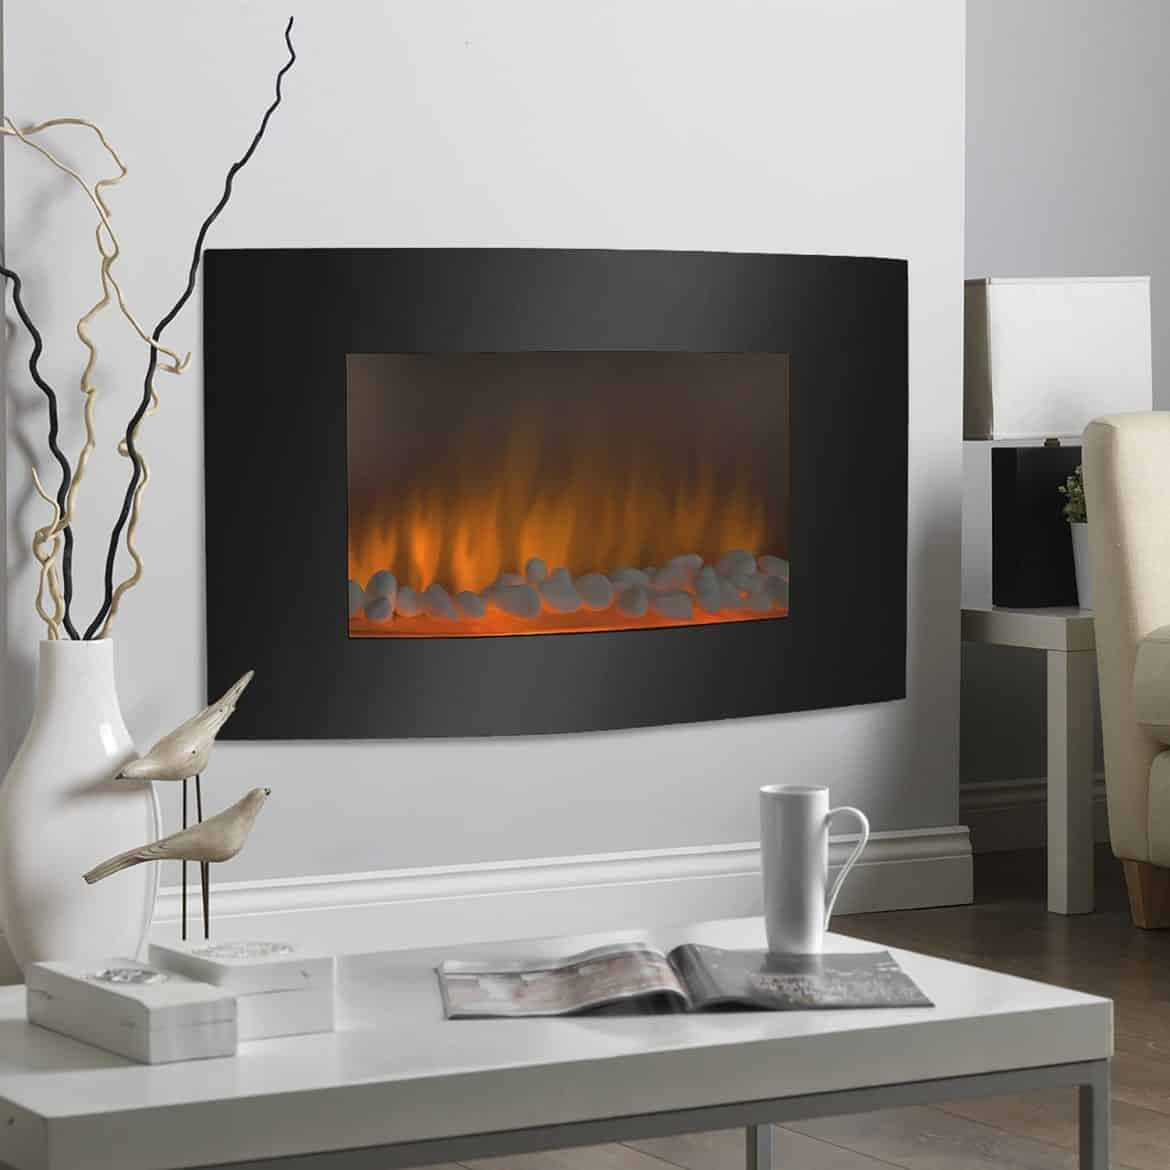 Modern Fireplace Insert Pros Cons Modern Electric Fireplaces Vs Ethanol Fireplace